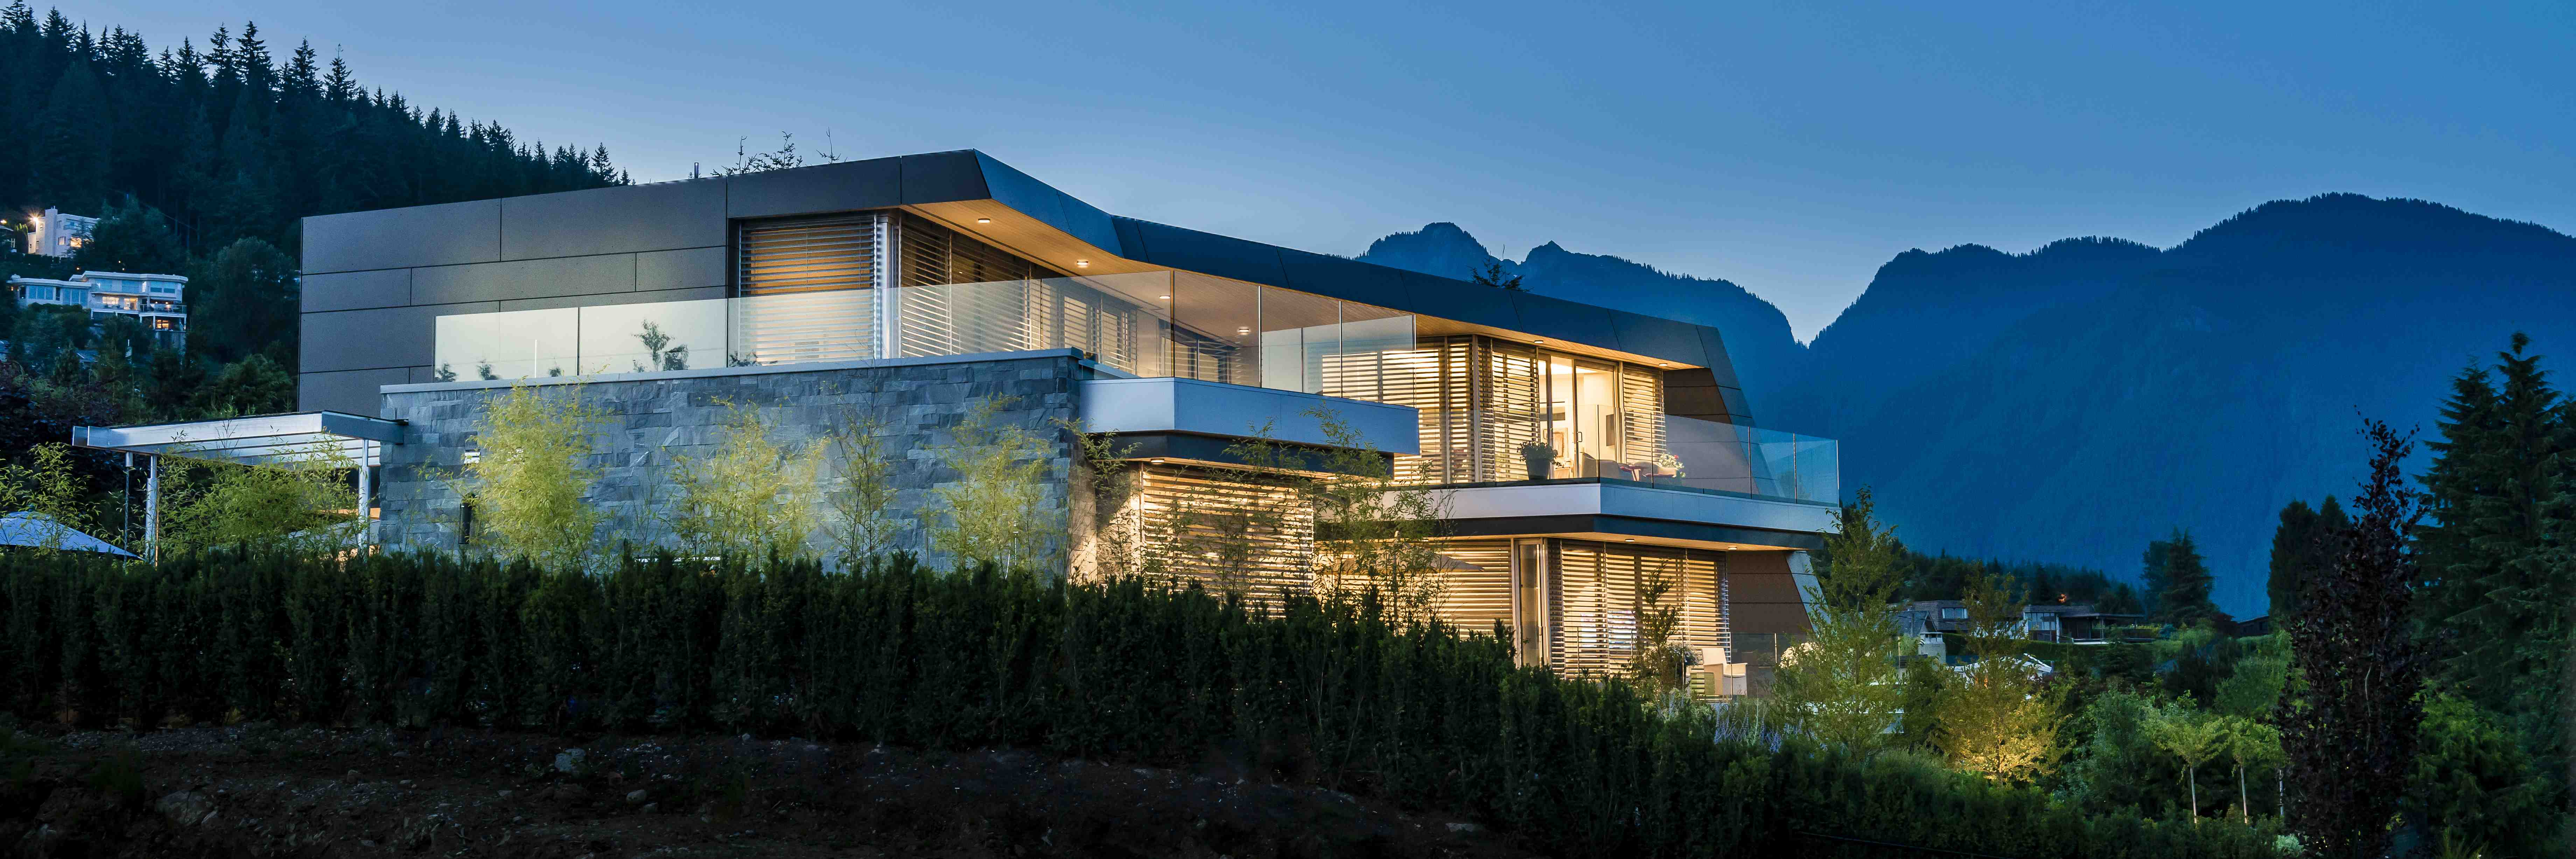 The Second Annual Vancouver Modern Home Tour Opens Doors